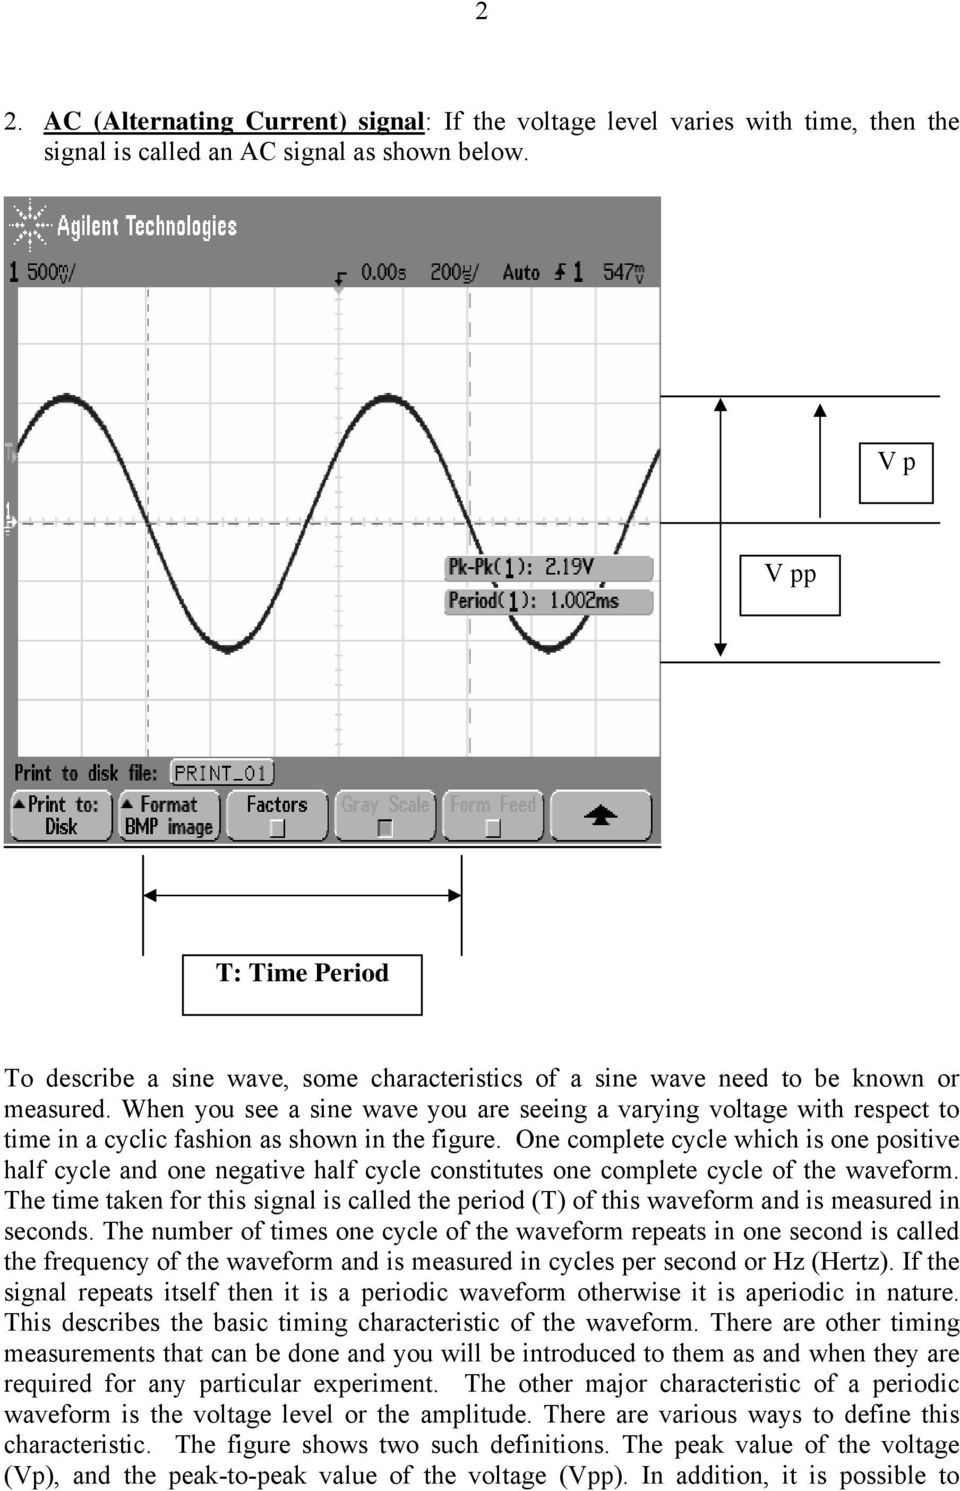 Experiment Number 5 Basic Oscilloscope Operations Pdf Simpledccircuit When You See A Sine Wave Are Seeing Varying Voltage With Respect To Time